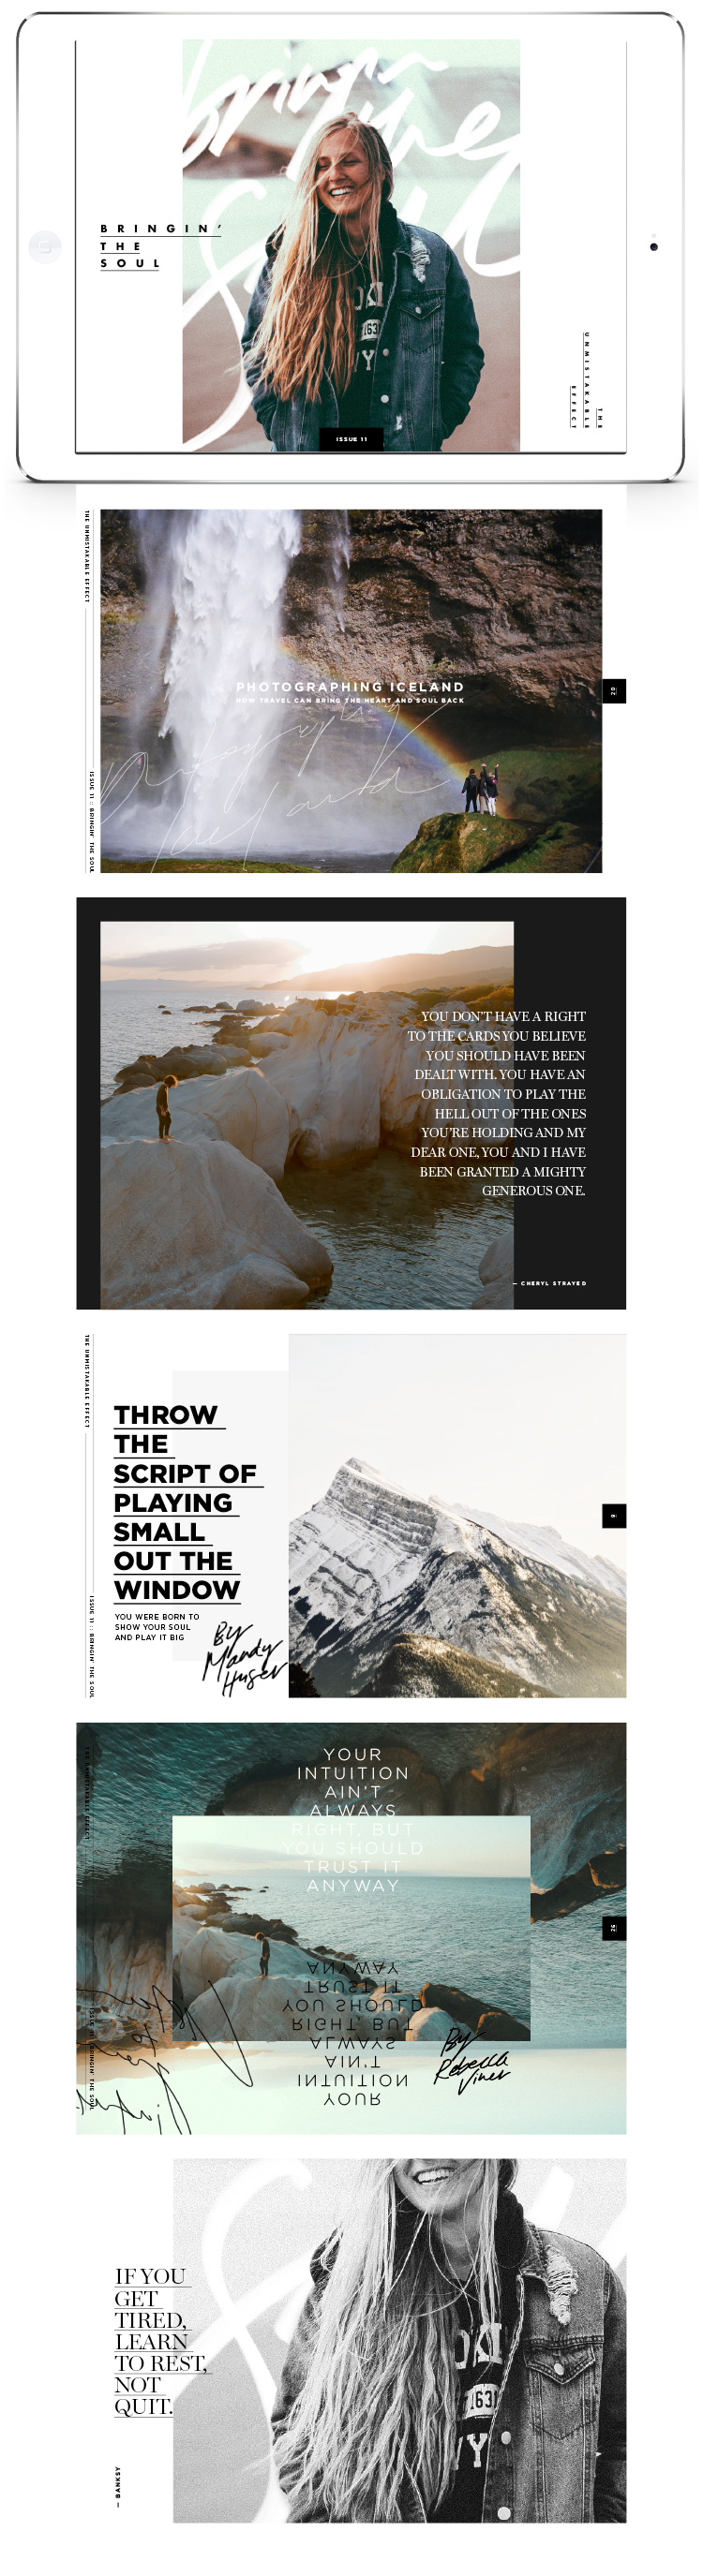 The Unmistakable Effect | Issue 11 | http://theunmistakableeffect.co/